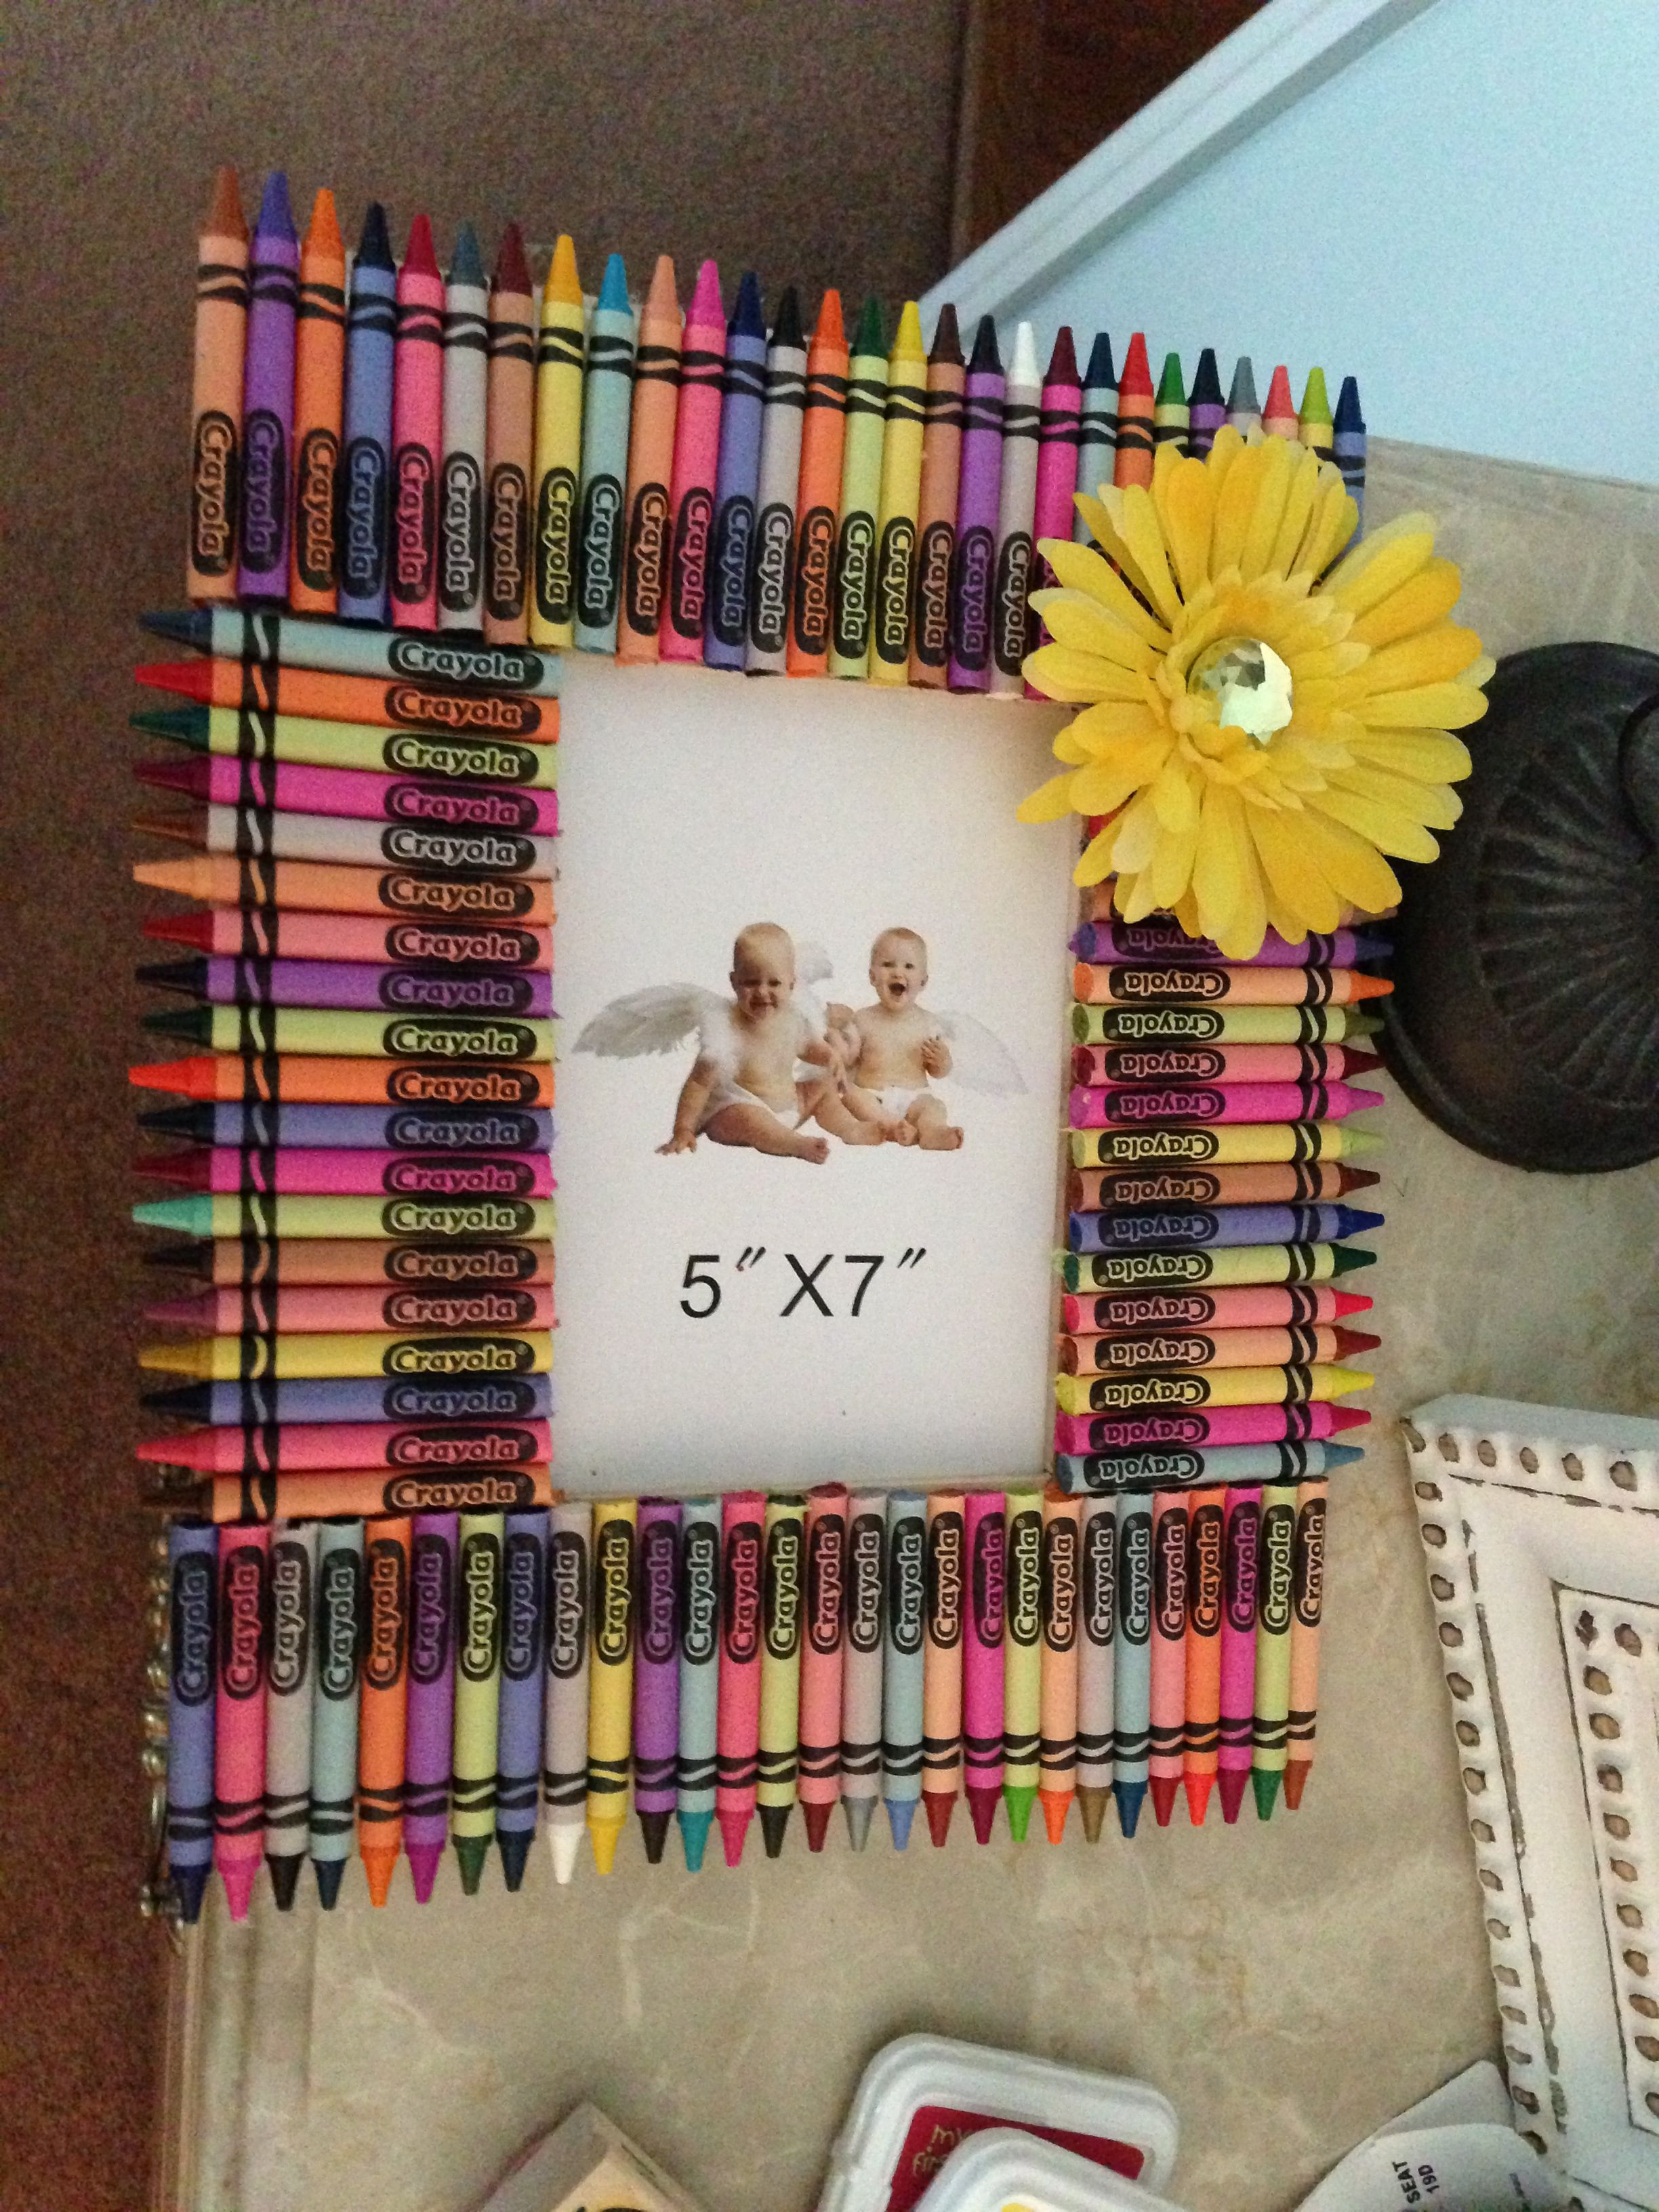 Homemade crayon picture frame | My Own Creations | Pinterest ...